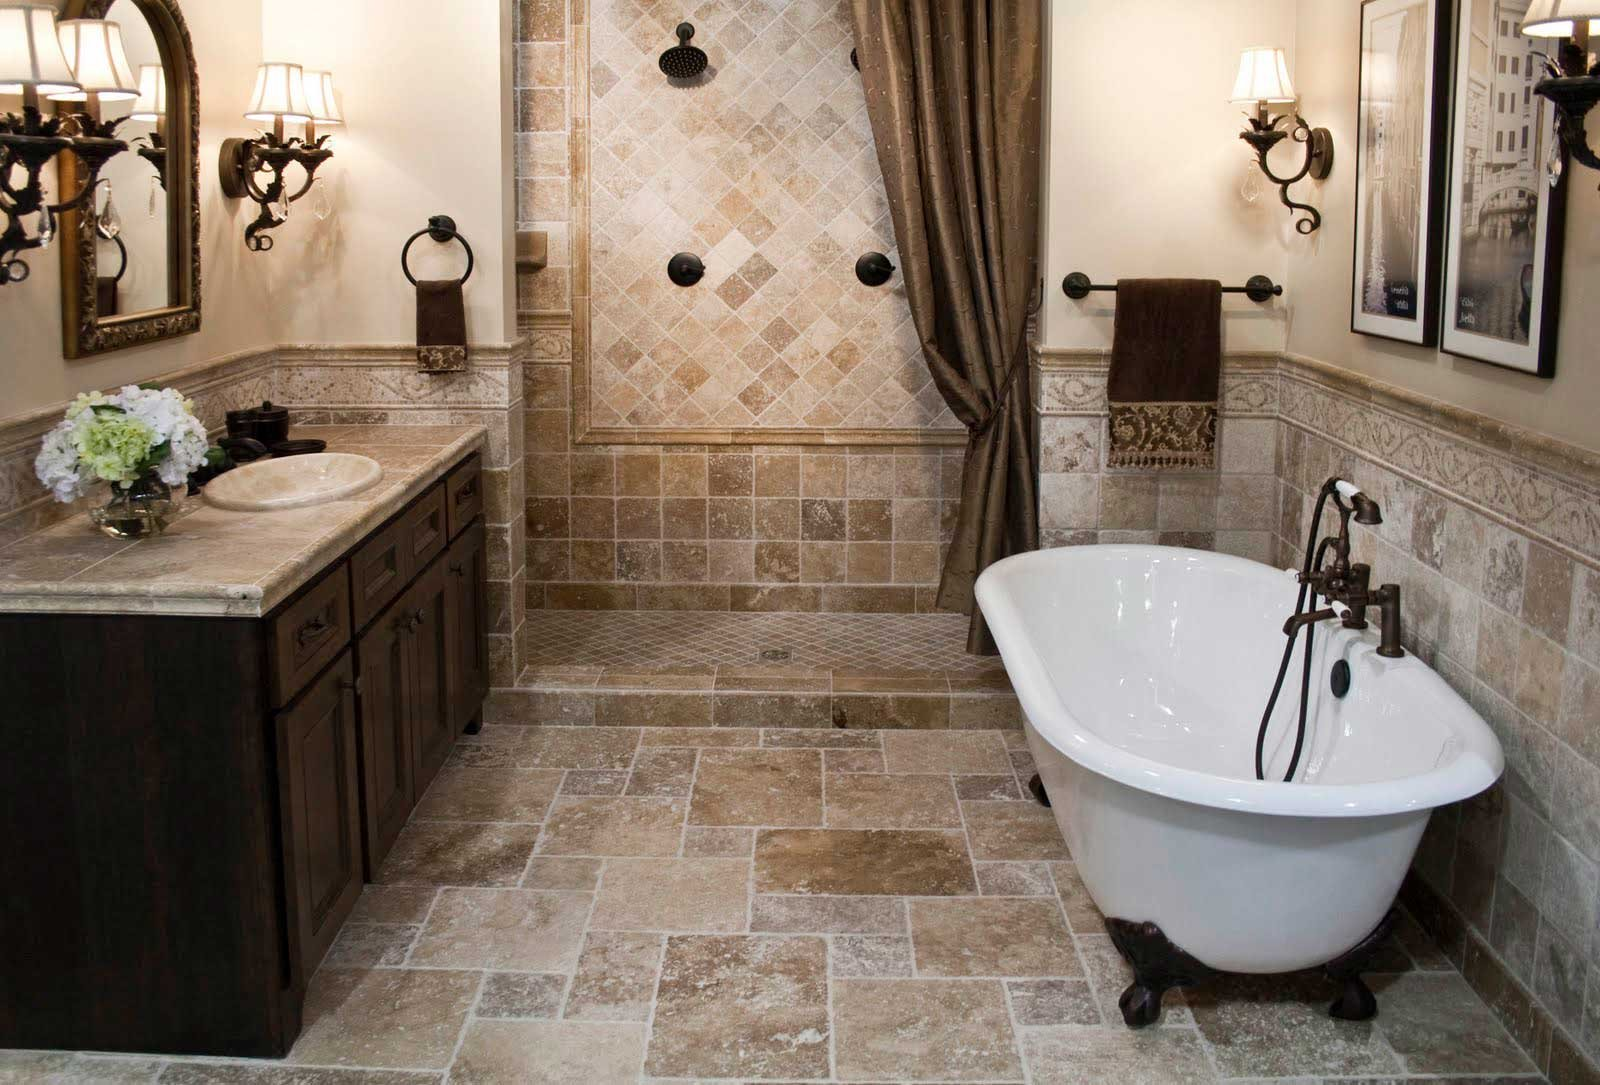 TIPS TO KEEP YOUR BATHROOM SMELLING CLEAN AND FRESH Furniture Expo - How to keep bathroom smelling good